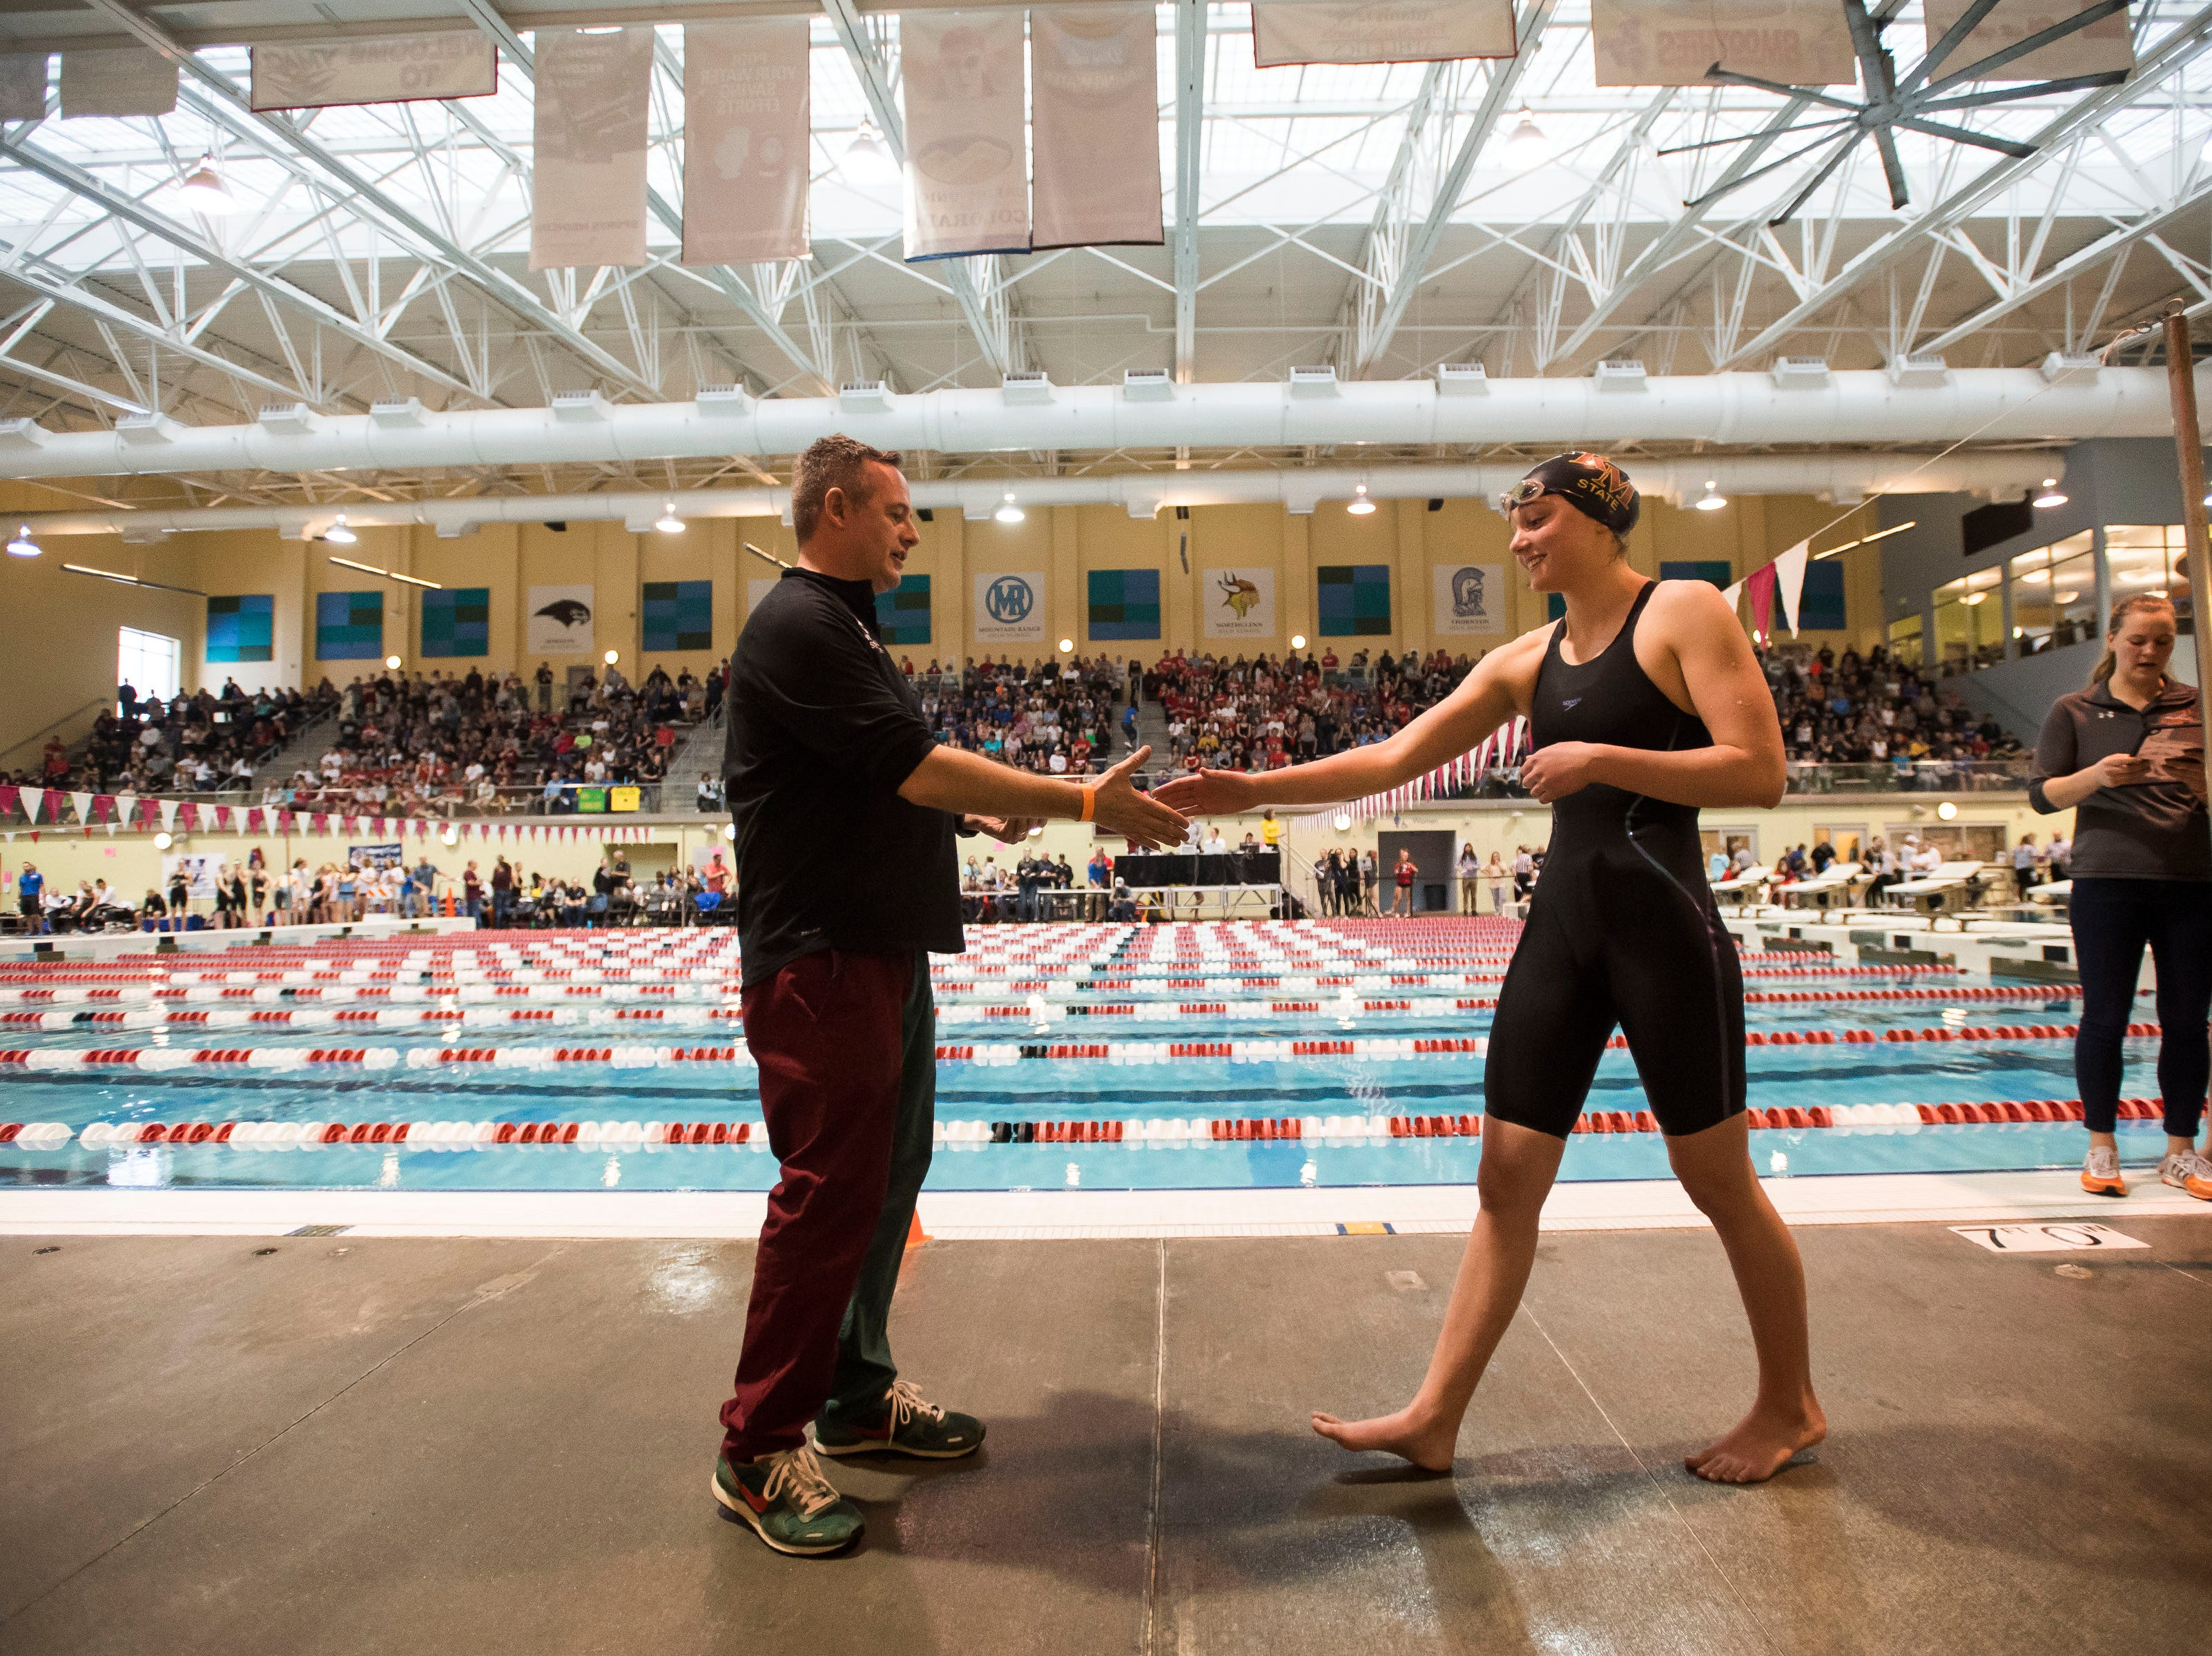 Rocky Mountain High School sophomore Meredith Smithbaker shakes hands with Scott Cohen while receiving her medal for placing second in the women's 50 yard freestyle on Saturday, Feb. 9, 2019, at Veterans Memorial Aquatic Center in Thornton, Colo.